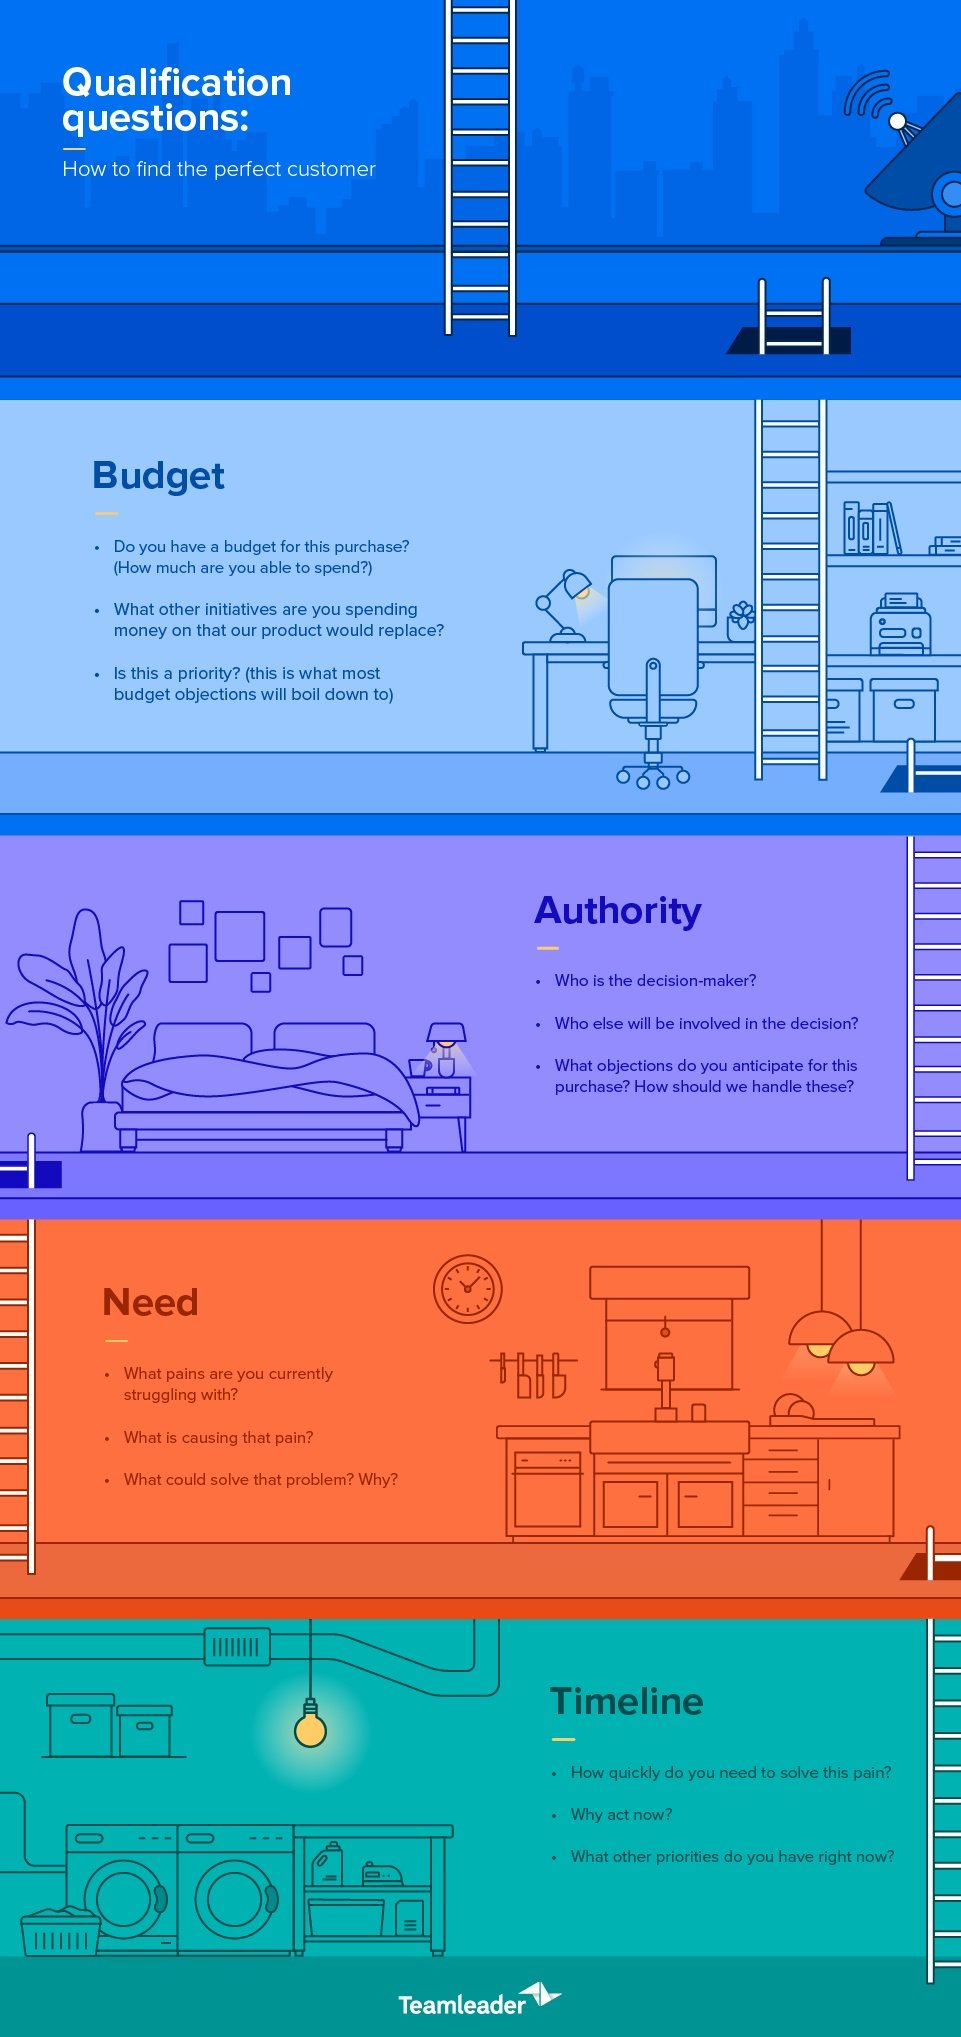 lead qualification questions BANT infographic